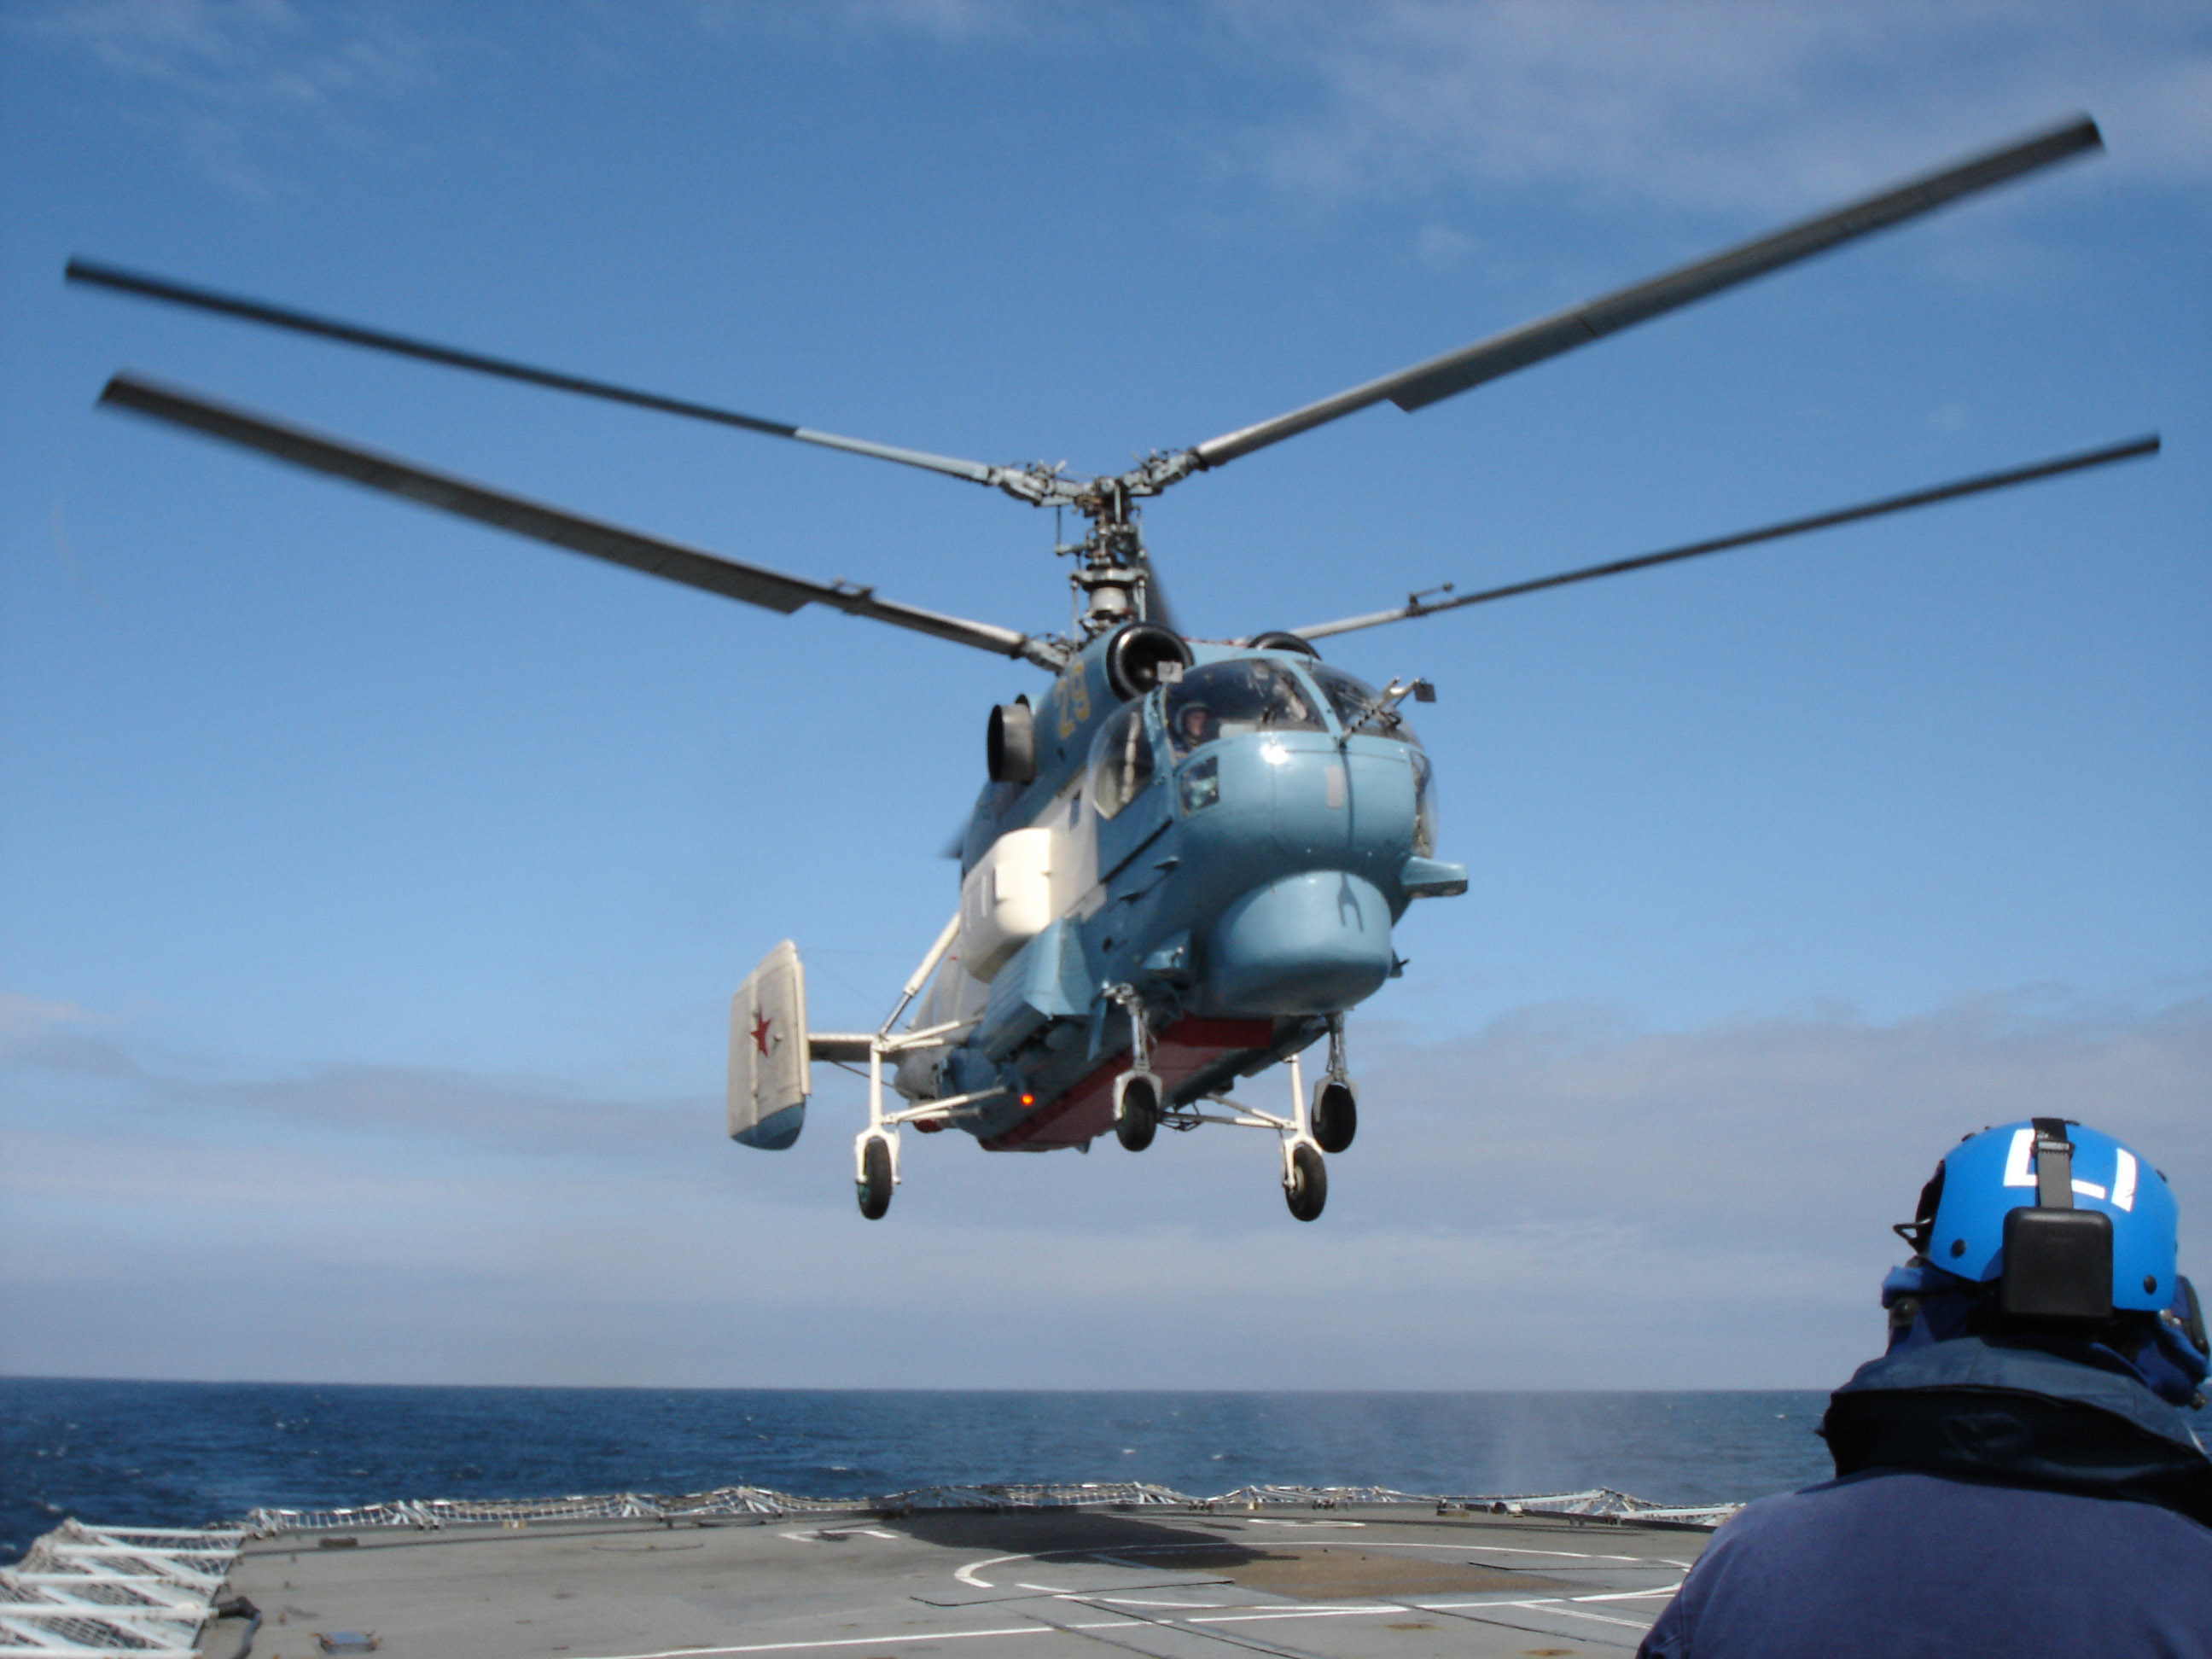 ka 28 helicopter with File Us Navy 050607 N 0000l 001 A Russian Ka 27 Helicopter Assigned To The Russian Destroyer Rfs Natoychiviy  Dd 610  Lands Aboard The British Royal Navy Frigate Hms Sutherland  F 81  During Baltic Operations  Baltops  2005 on 172 Mil Mi 8mtps Smalta M Electronic Warfare Helicopter likewise Watch besides  likewise Ar14504 1 144 Me 163 Komet Coloring 02 further Vietnam War.